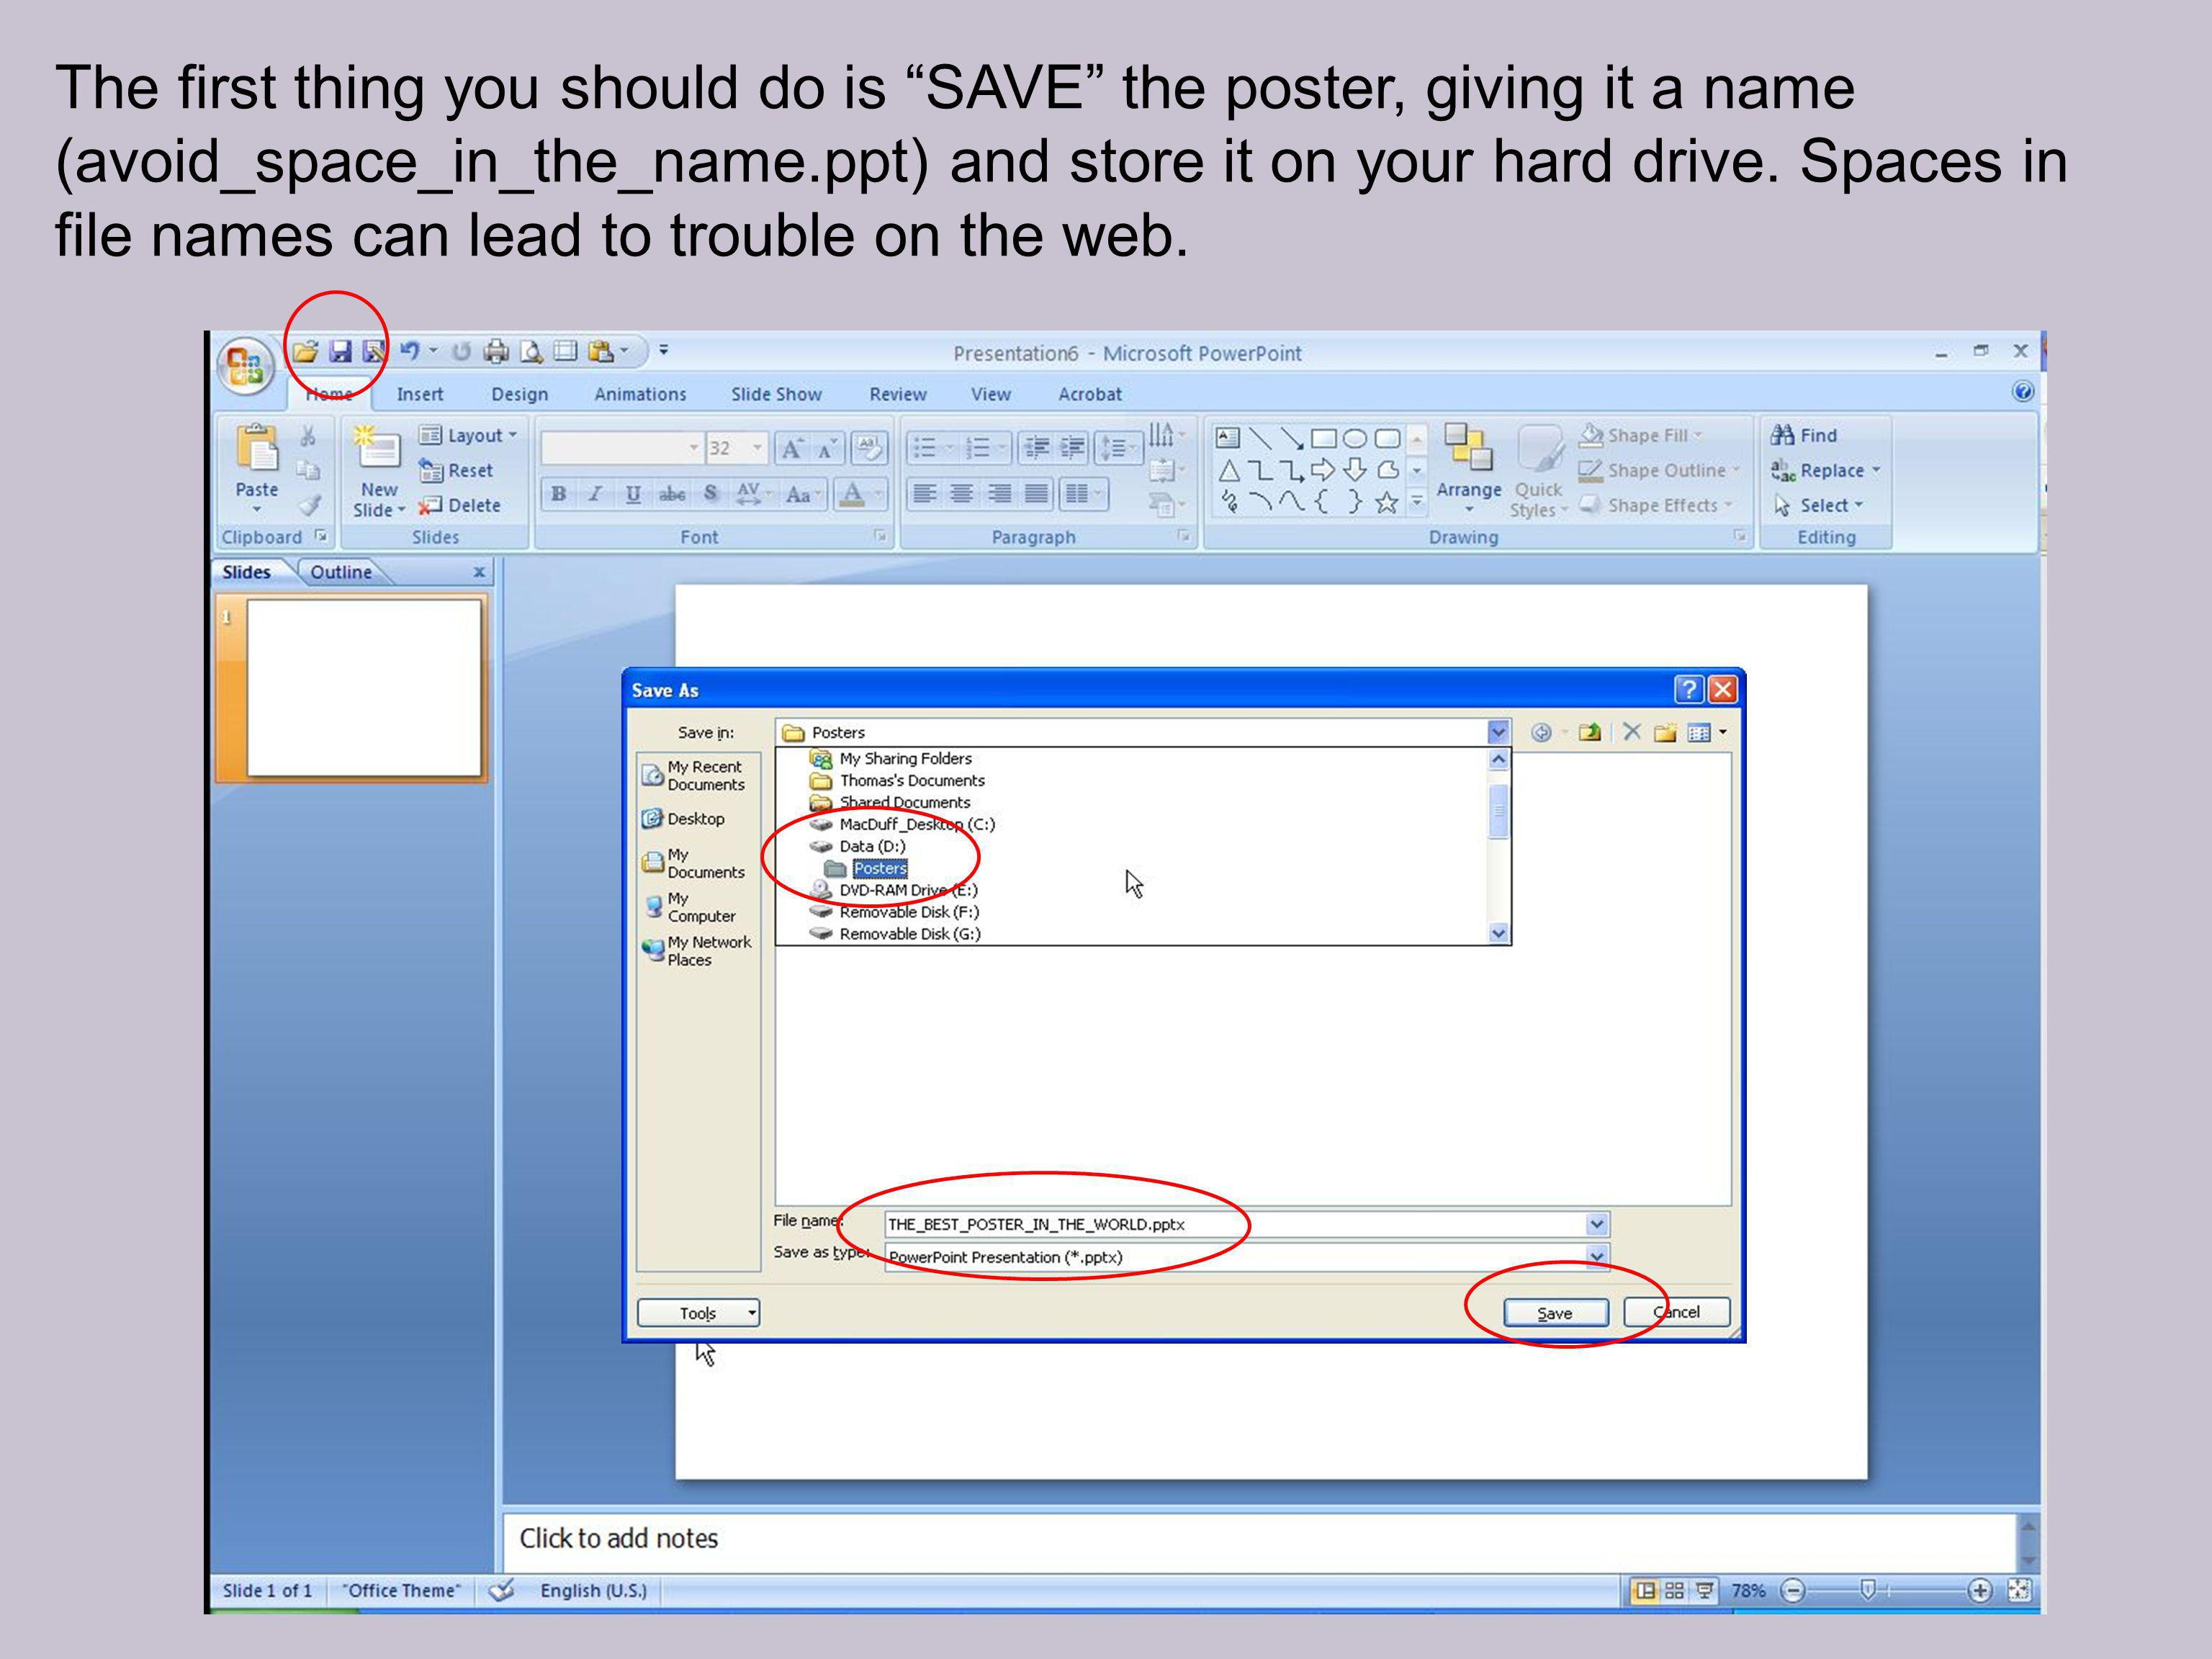 The first thing you should do is SAVE the poster, giving it a name (avoid_space_in_the_name.ppt) and store it on your hard drive. Spaces in file names